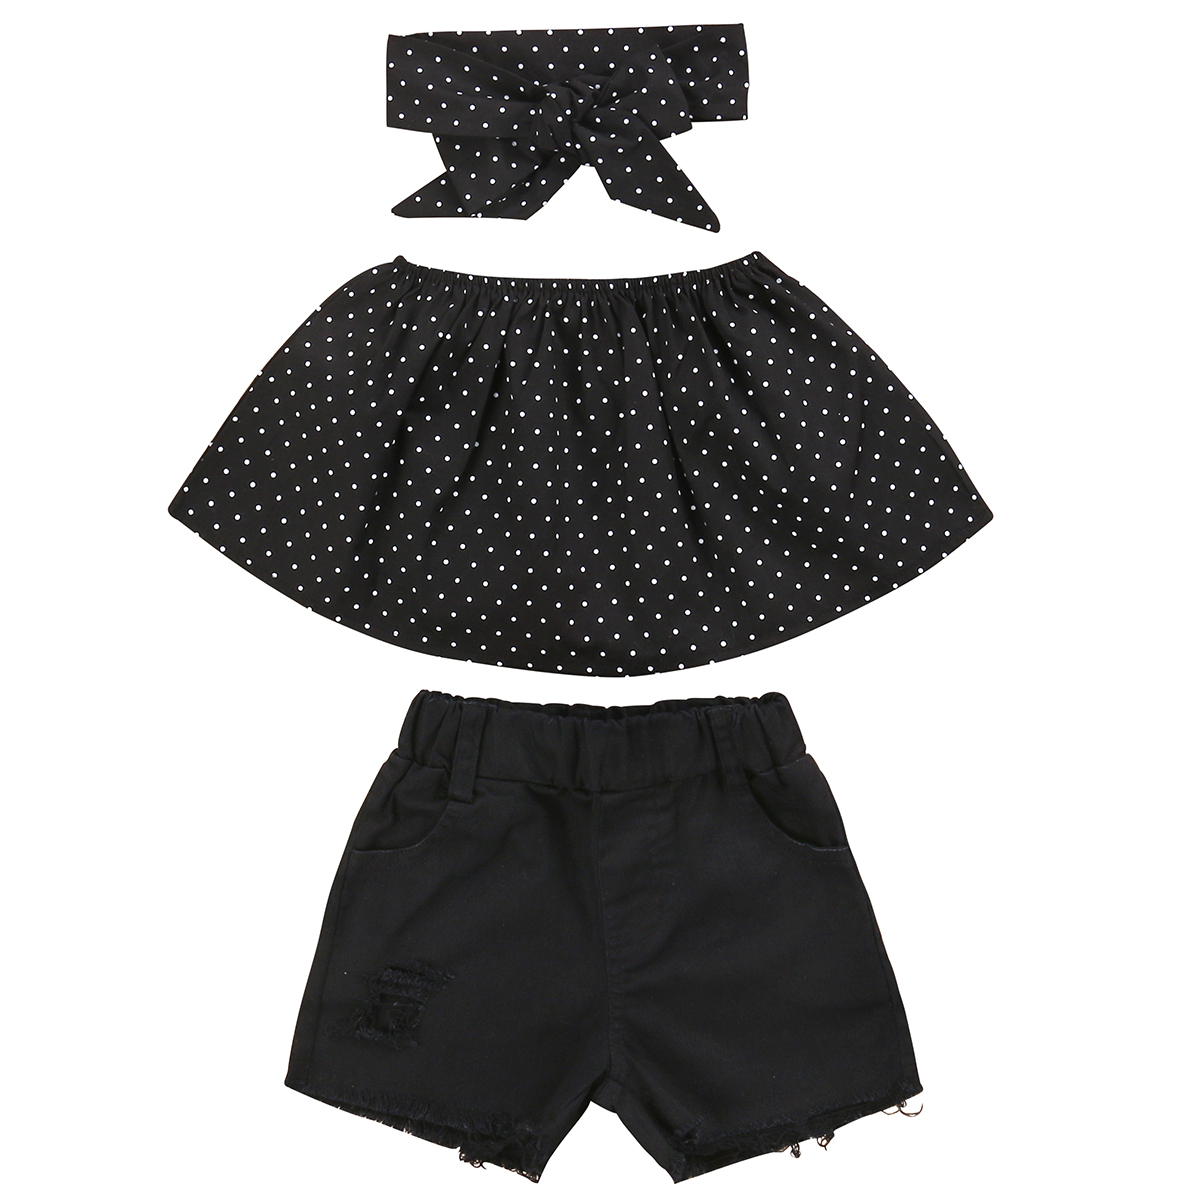 2017 Hot children clothes set Fashion black Toddler Kids Girls Off Shoulder Dot Tops Hot shorts 2Pcs Outfits Set Summer Clothes